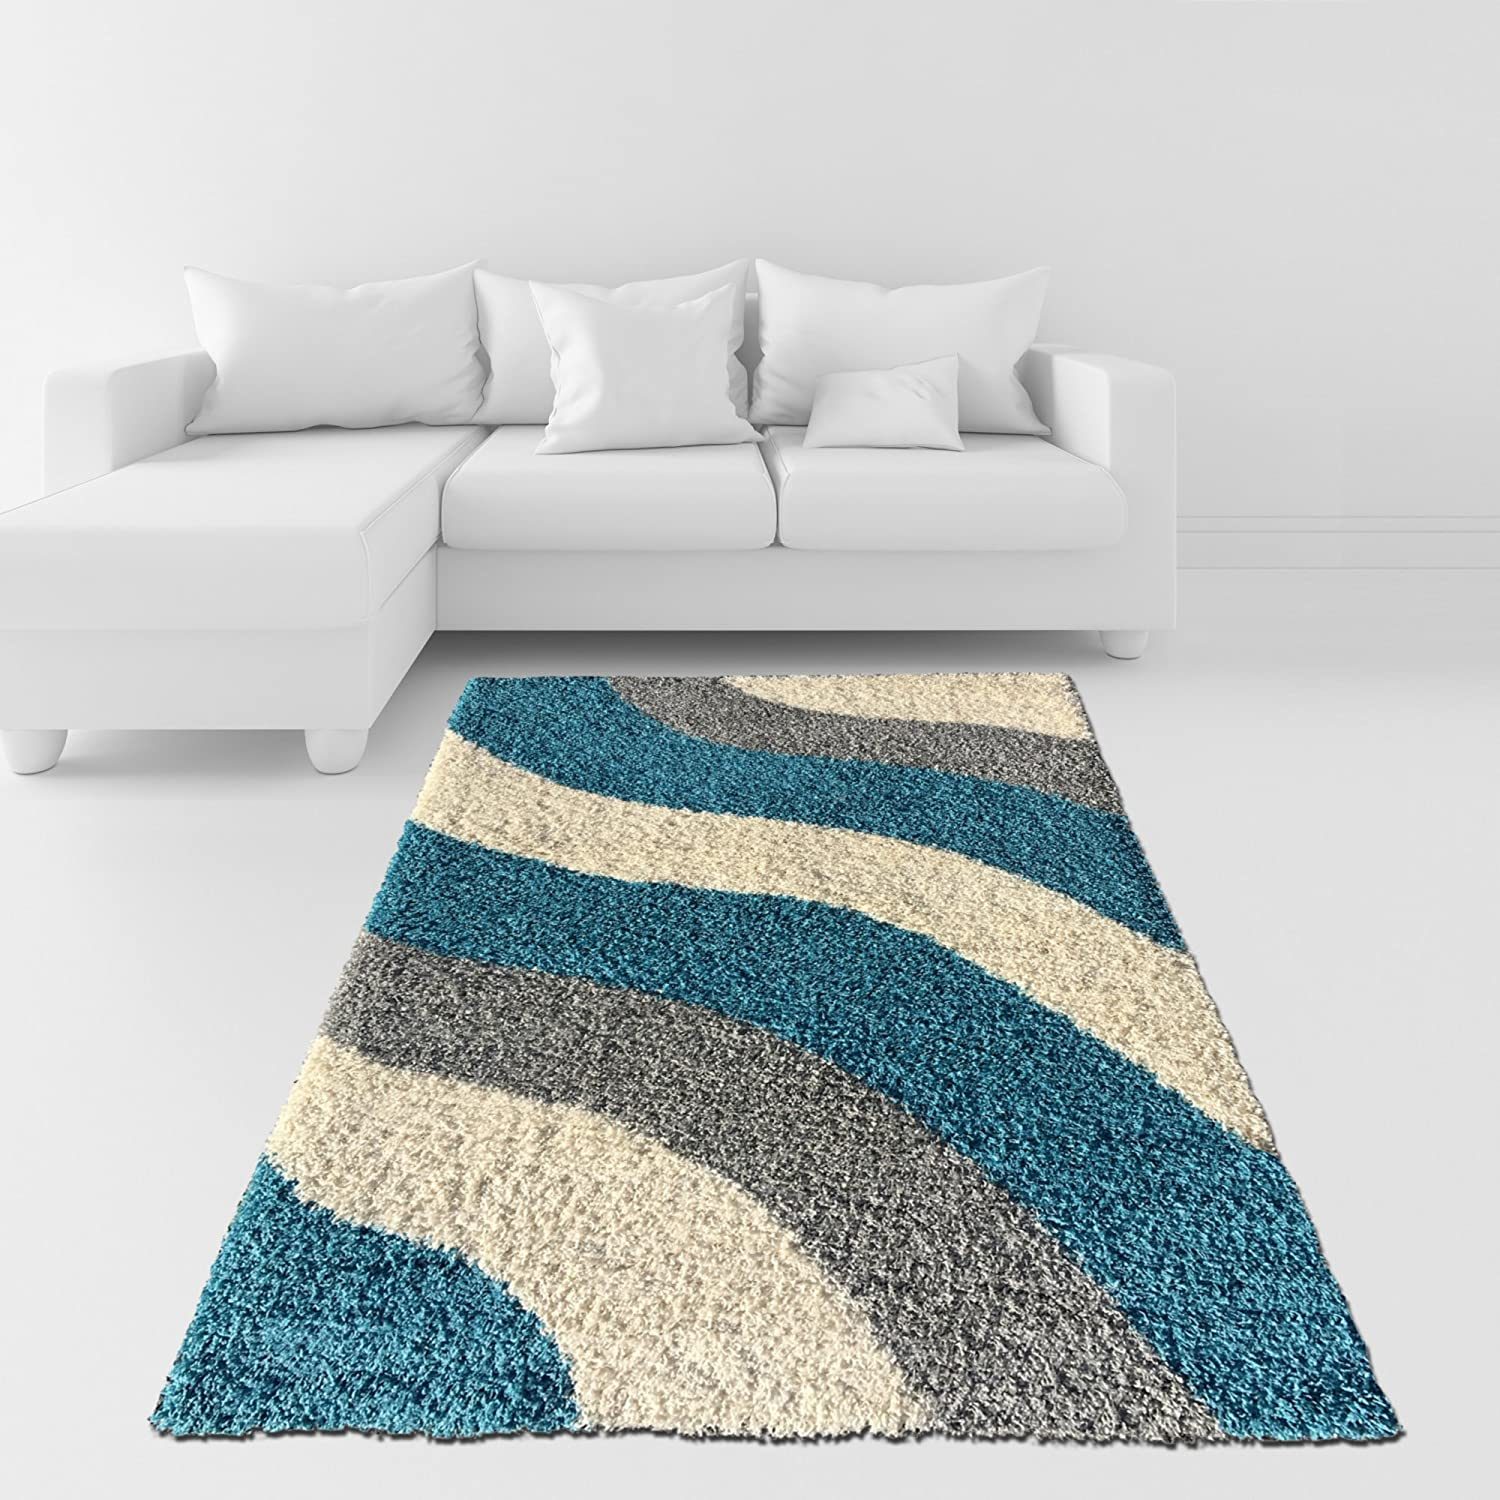 soft shag area rug 5x7 geometric striped turquoise